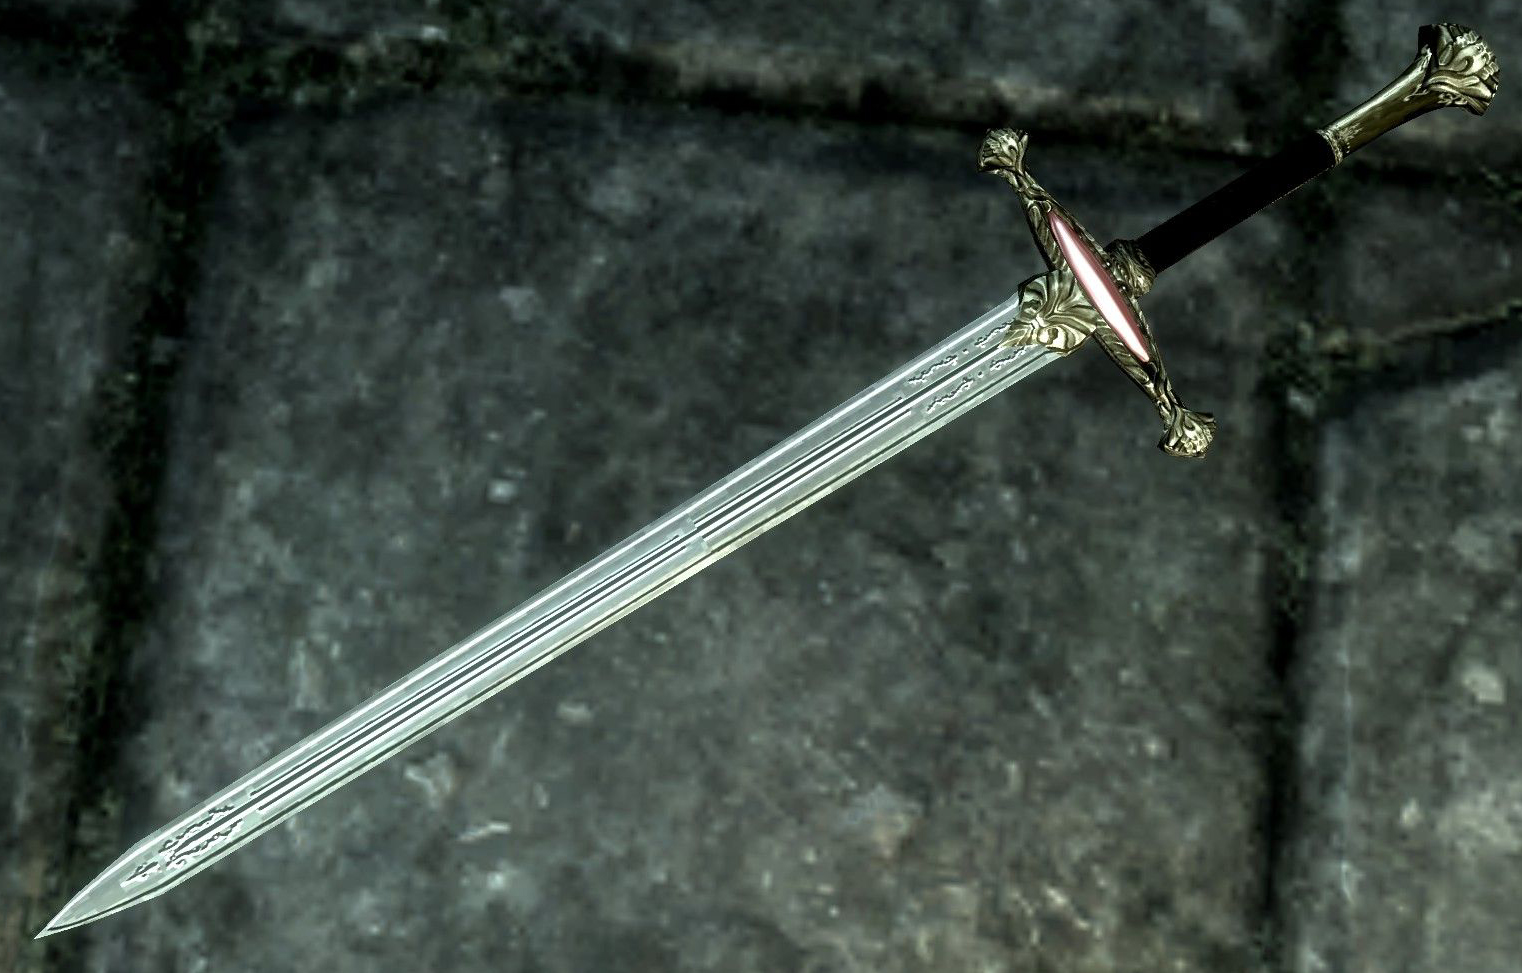 Skyrim Dwarven Sword Scattered across skyrim